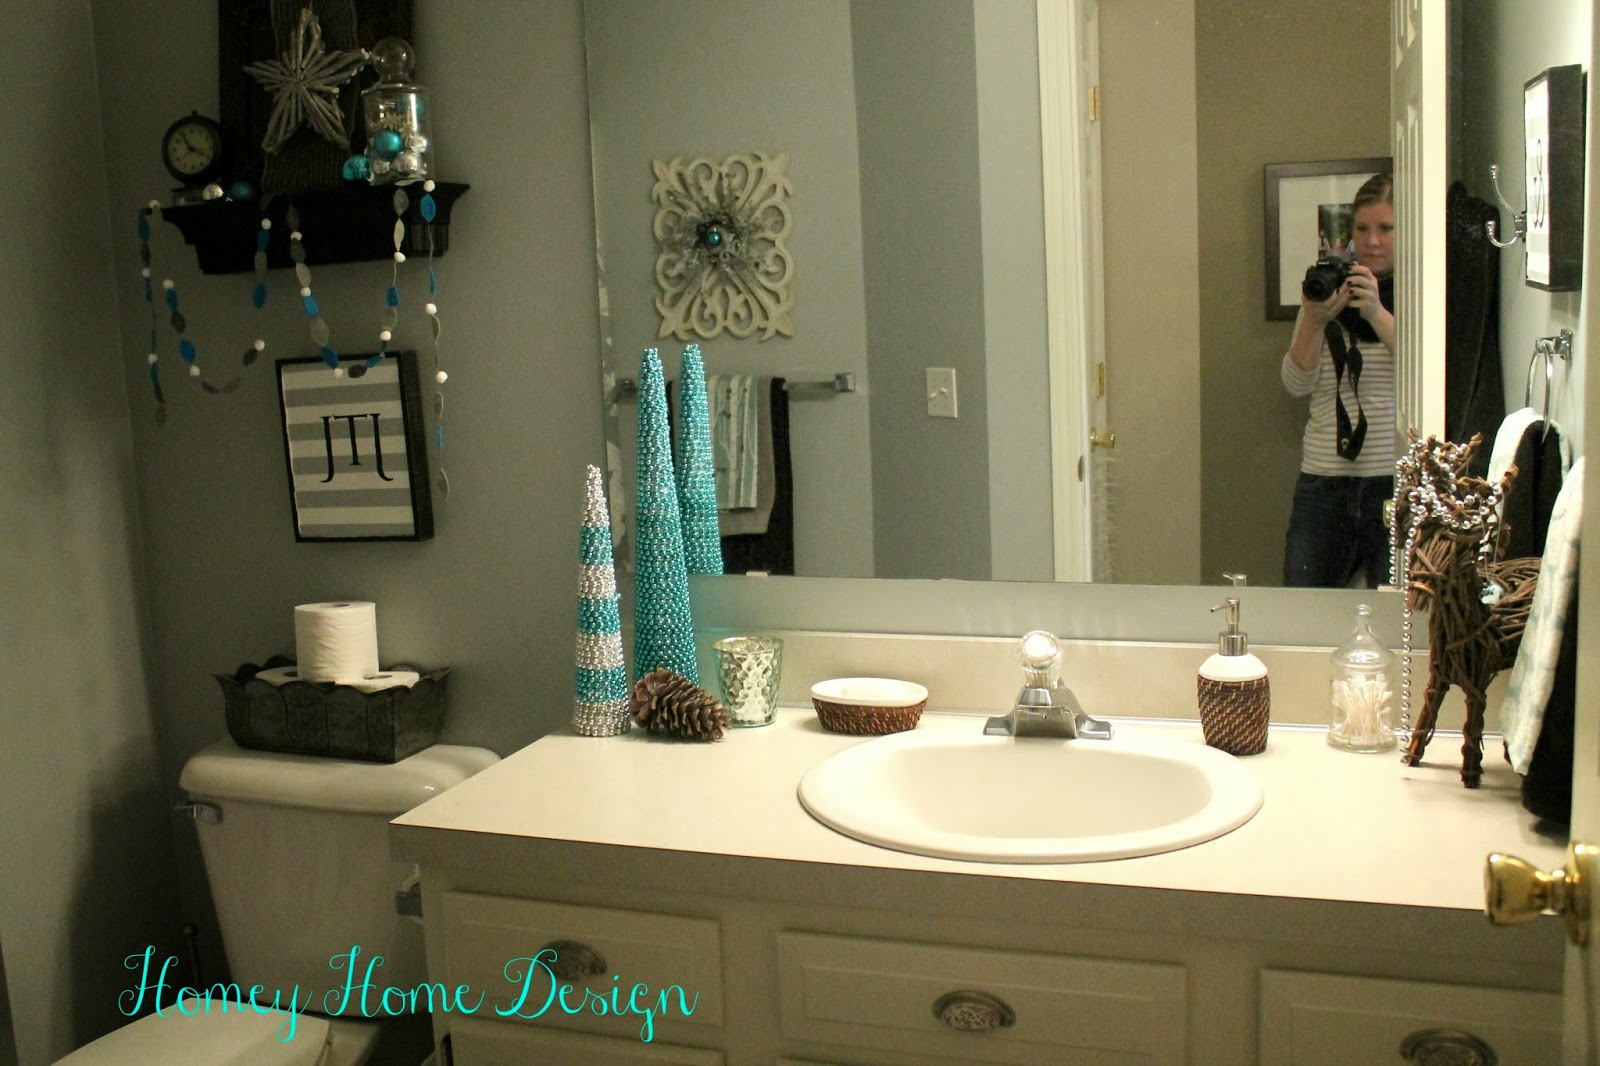 Homey home design bathroom christmas ideas for Bathroom decorating ideas pictures